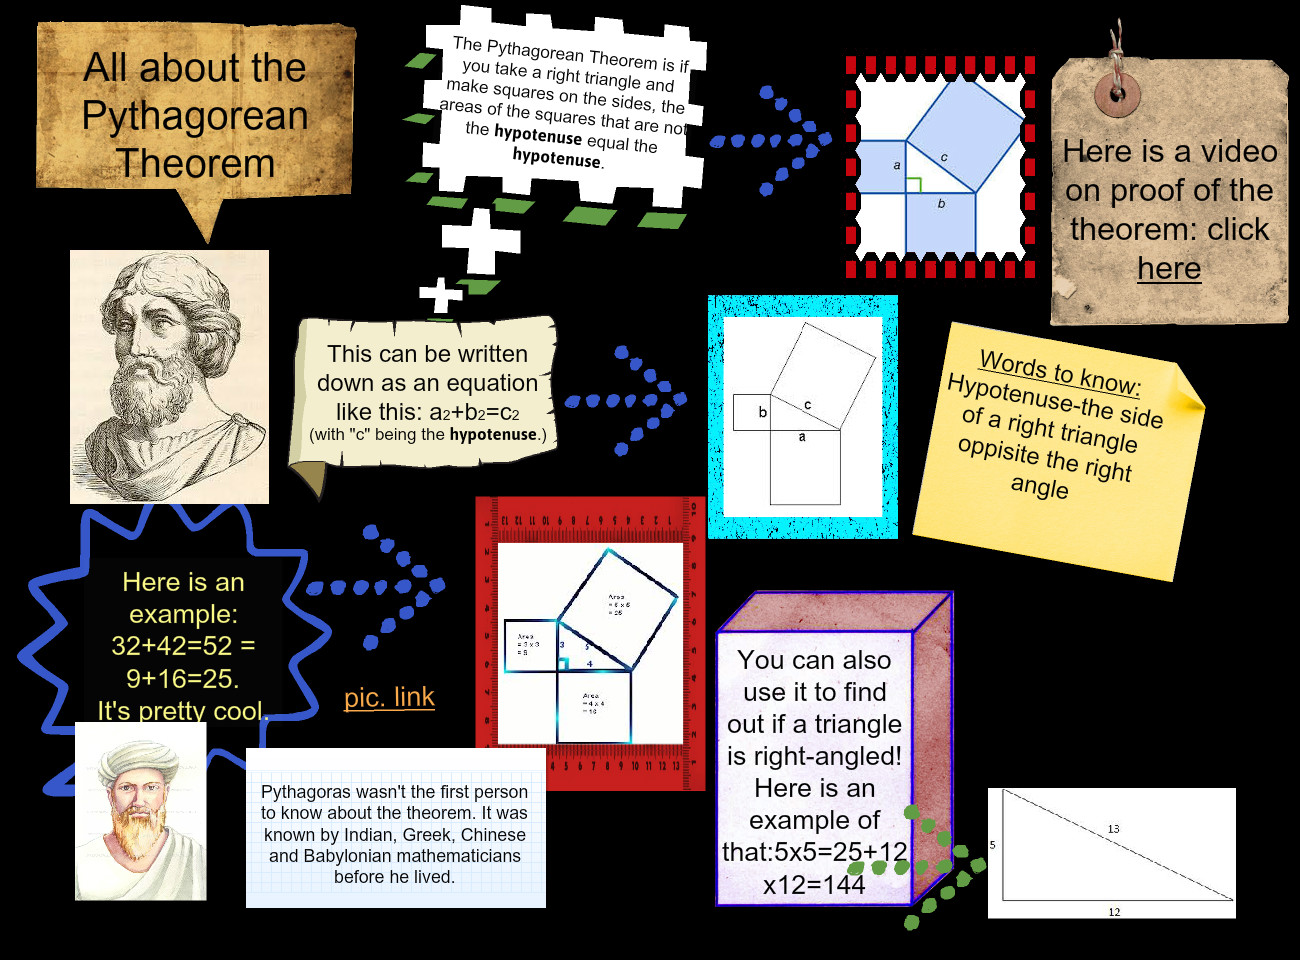 All about the Pythagorean Theorem